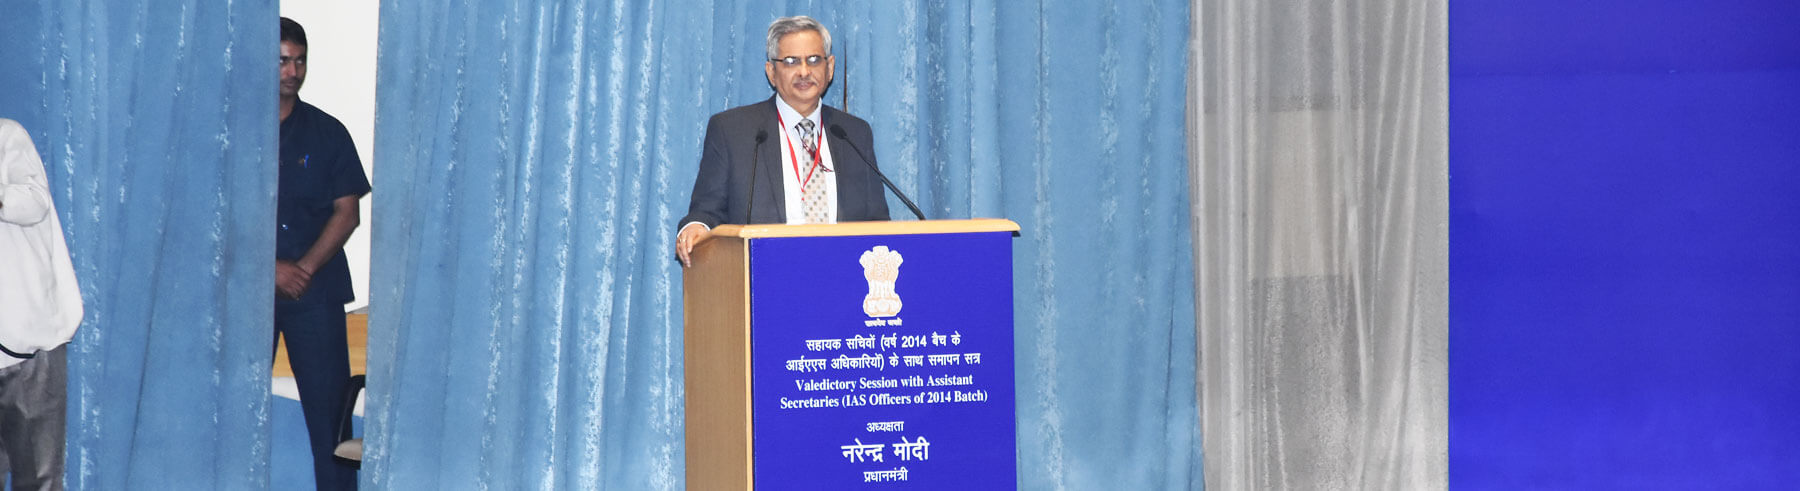 Secretary(P) addressing valedictory Session of Assistant Secretaries (IAS Officers of 2014 Batch)